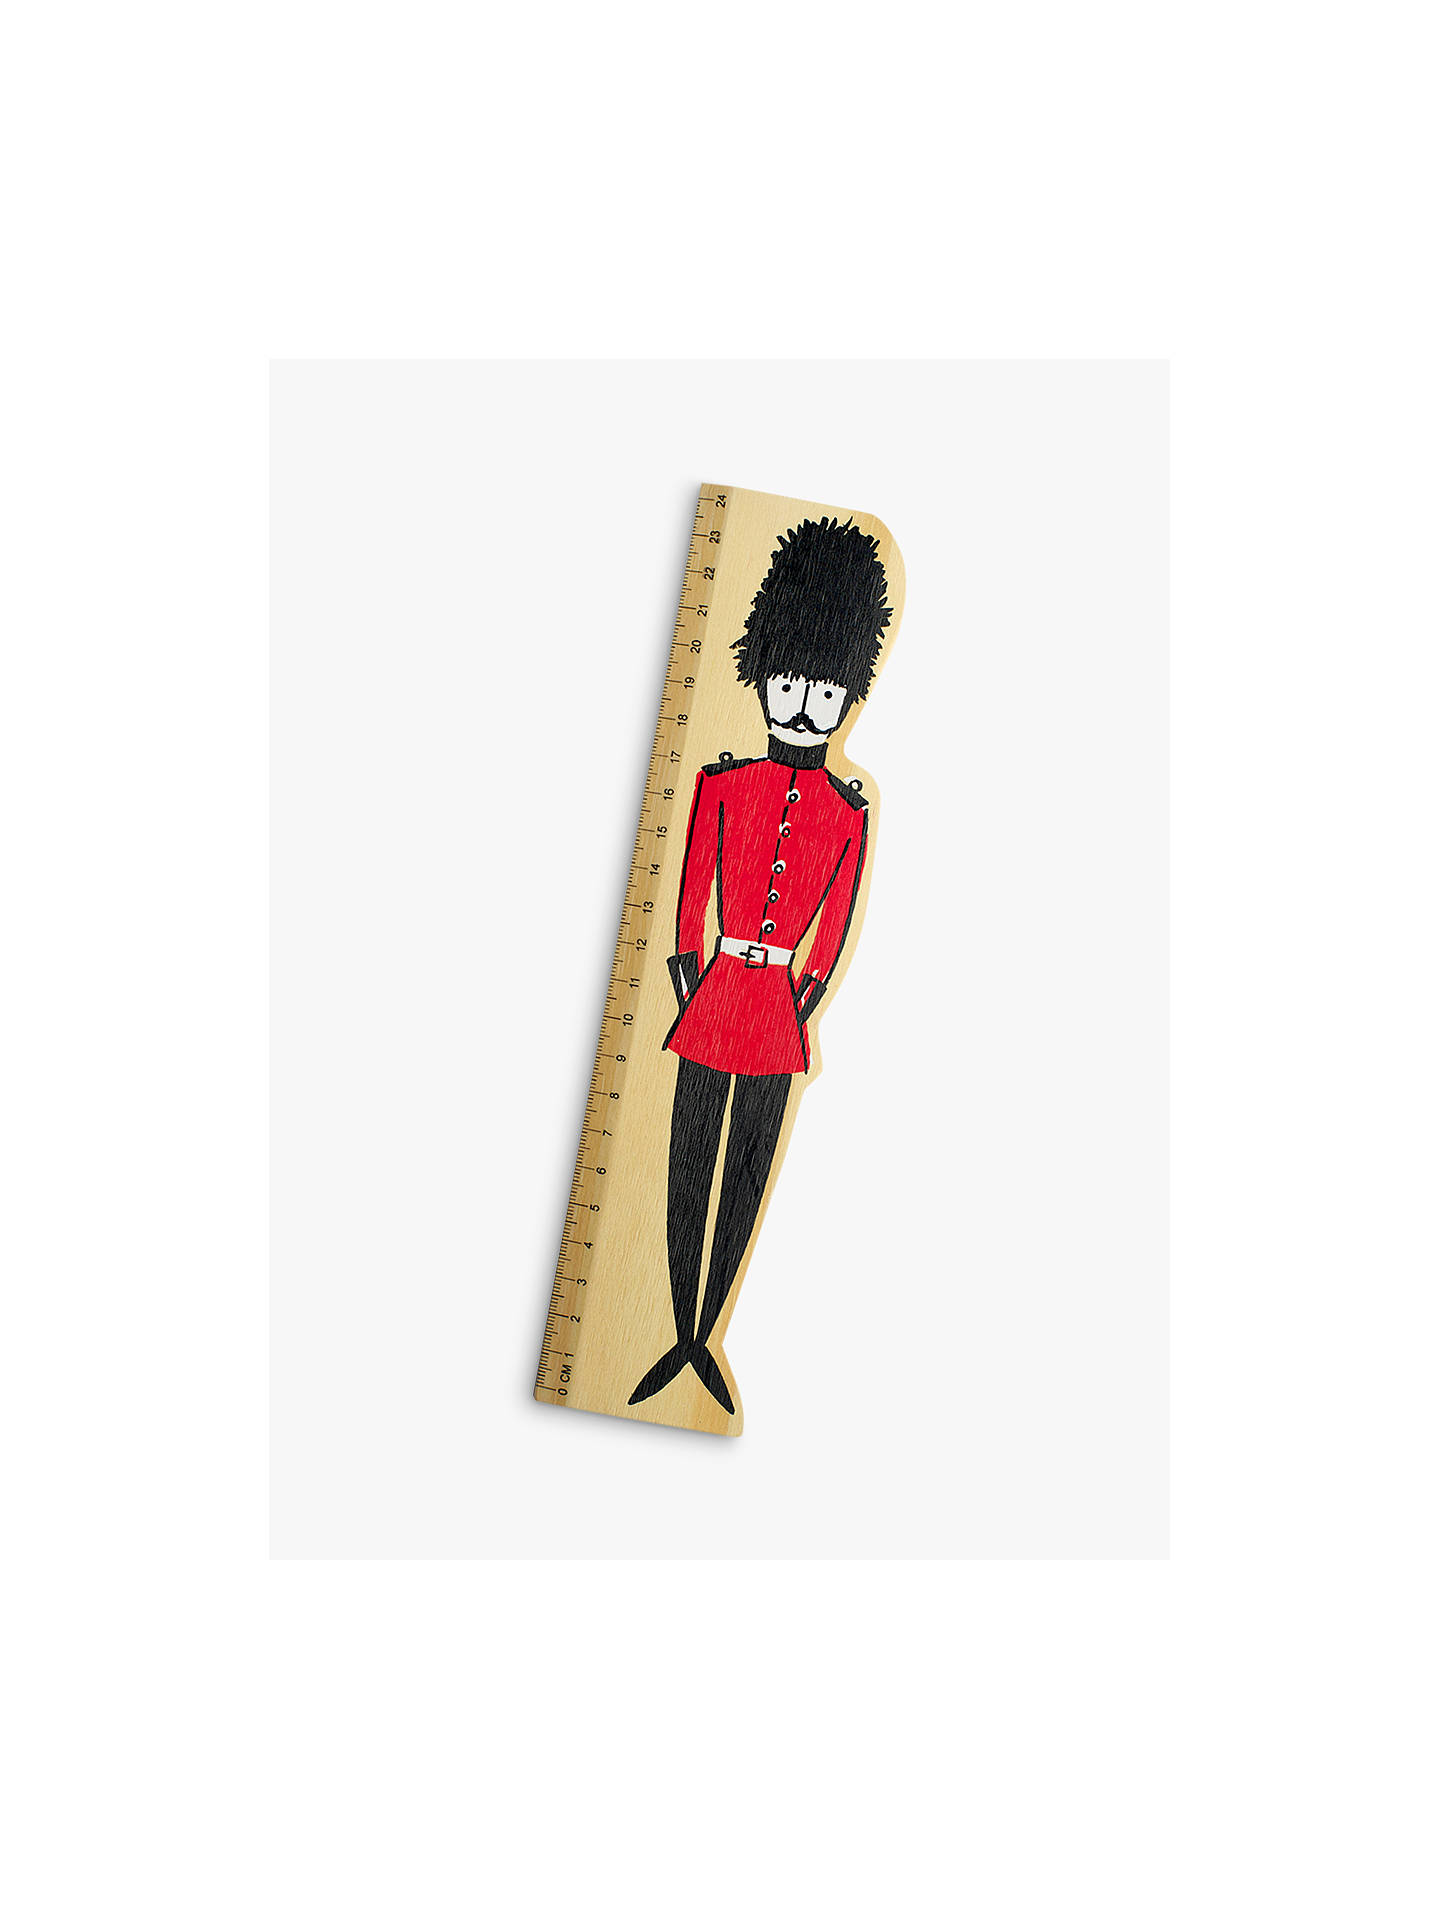 BuyAlice Tait Guard Ruler Online at johnlewis.com